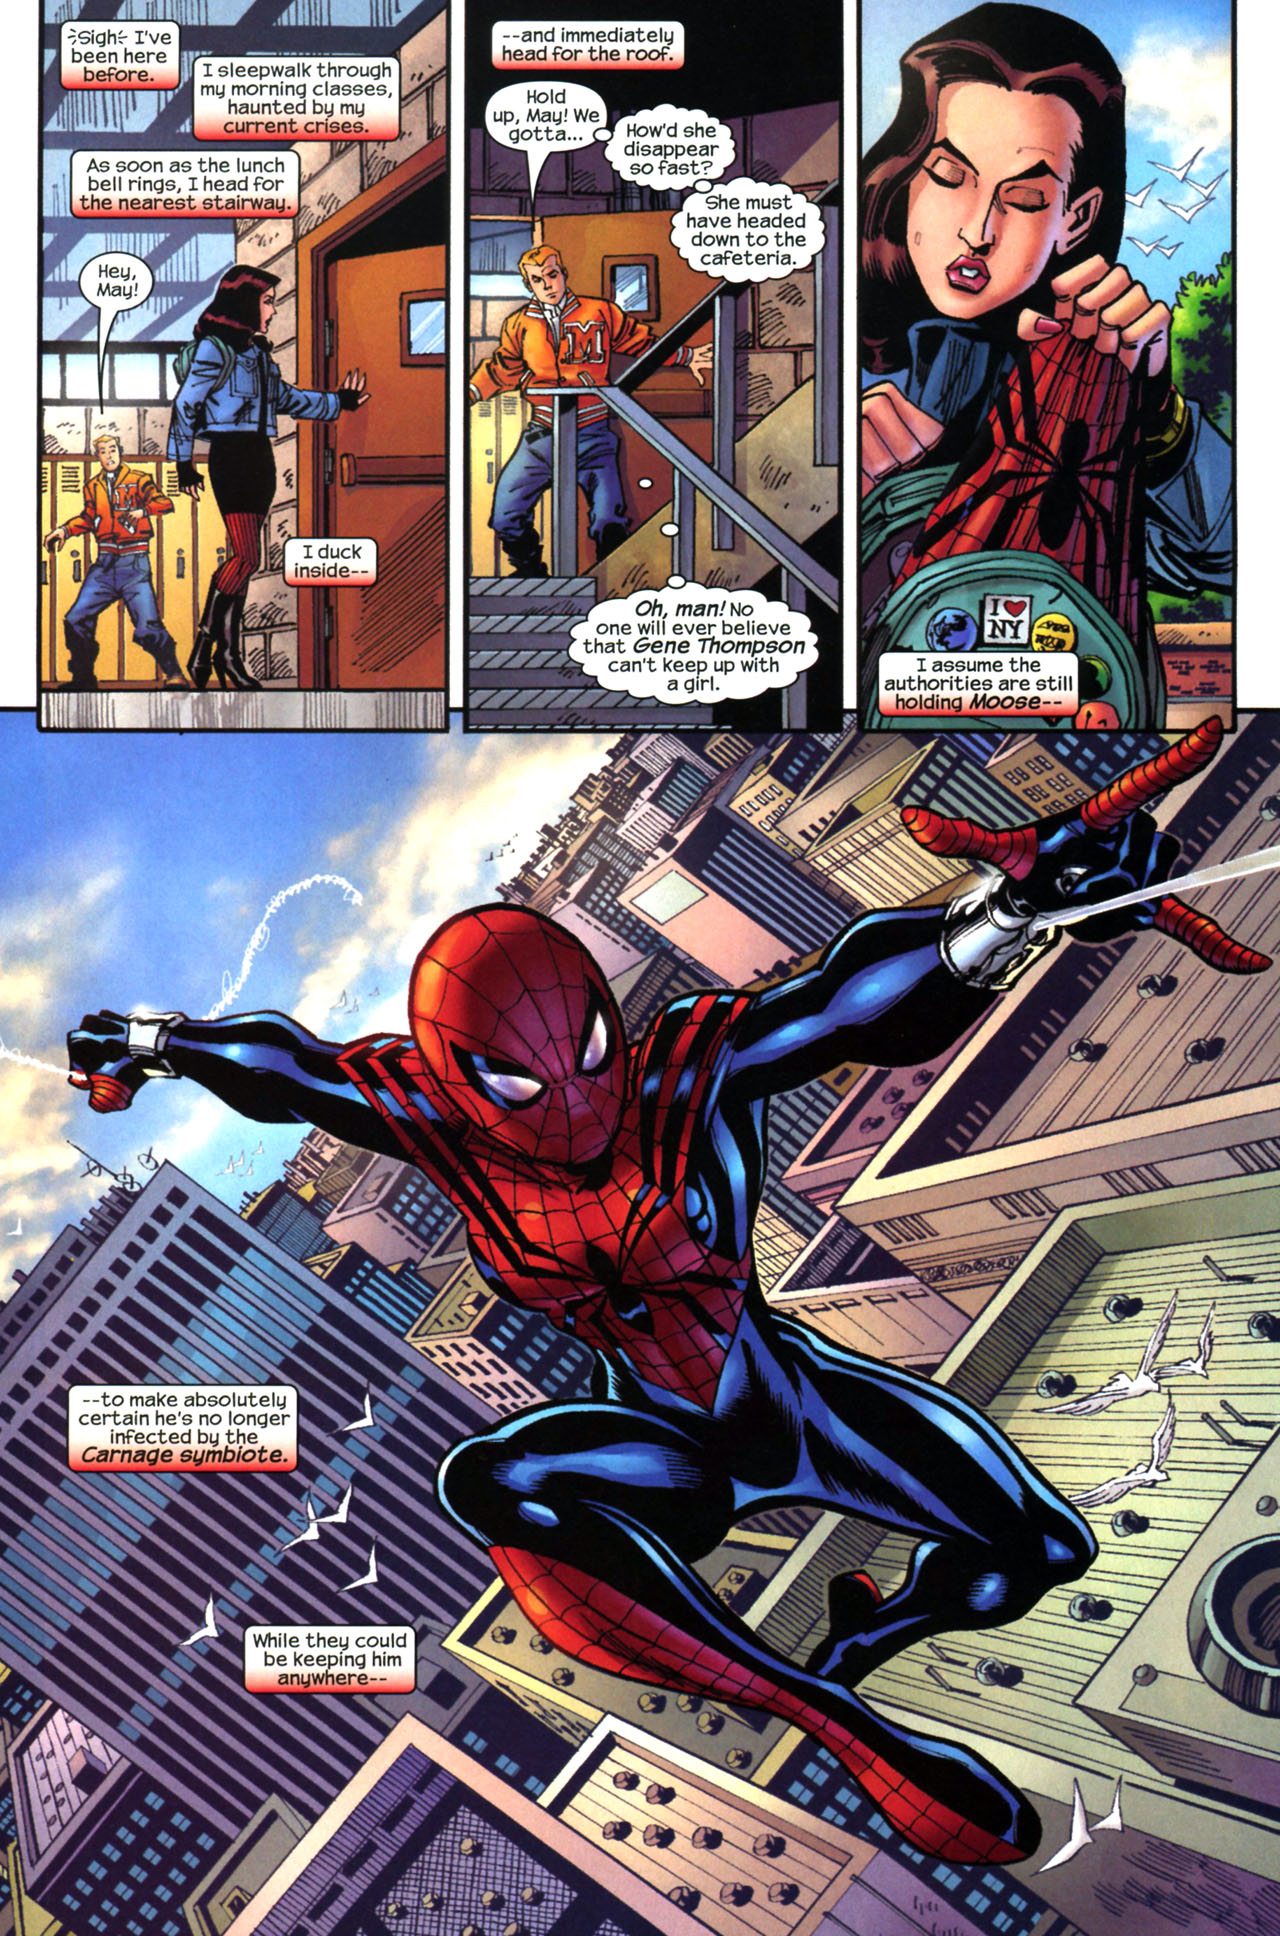 Read online Amazing Spider-Girl comic -  Issue #13 - 15